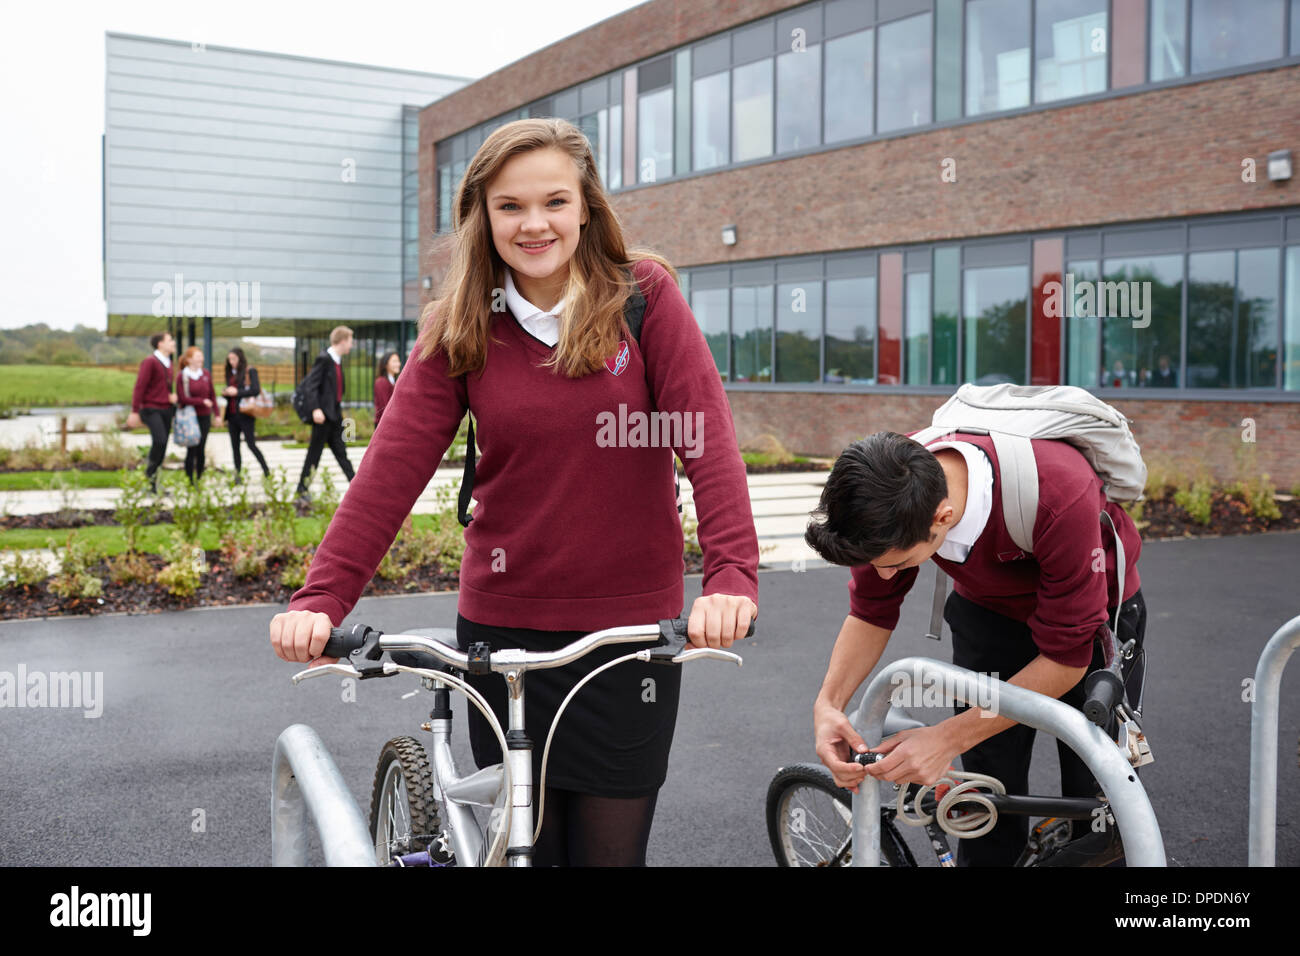 Teenagers unlocking cycles outside school - Stock Image